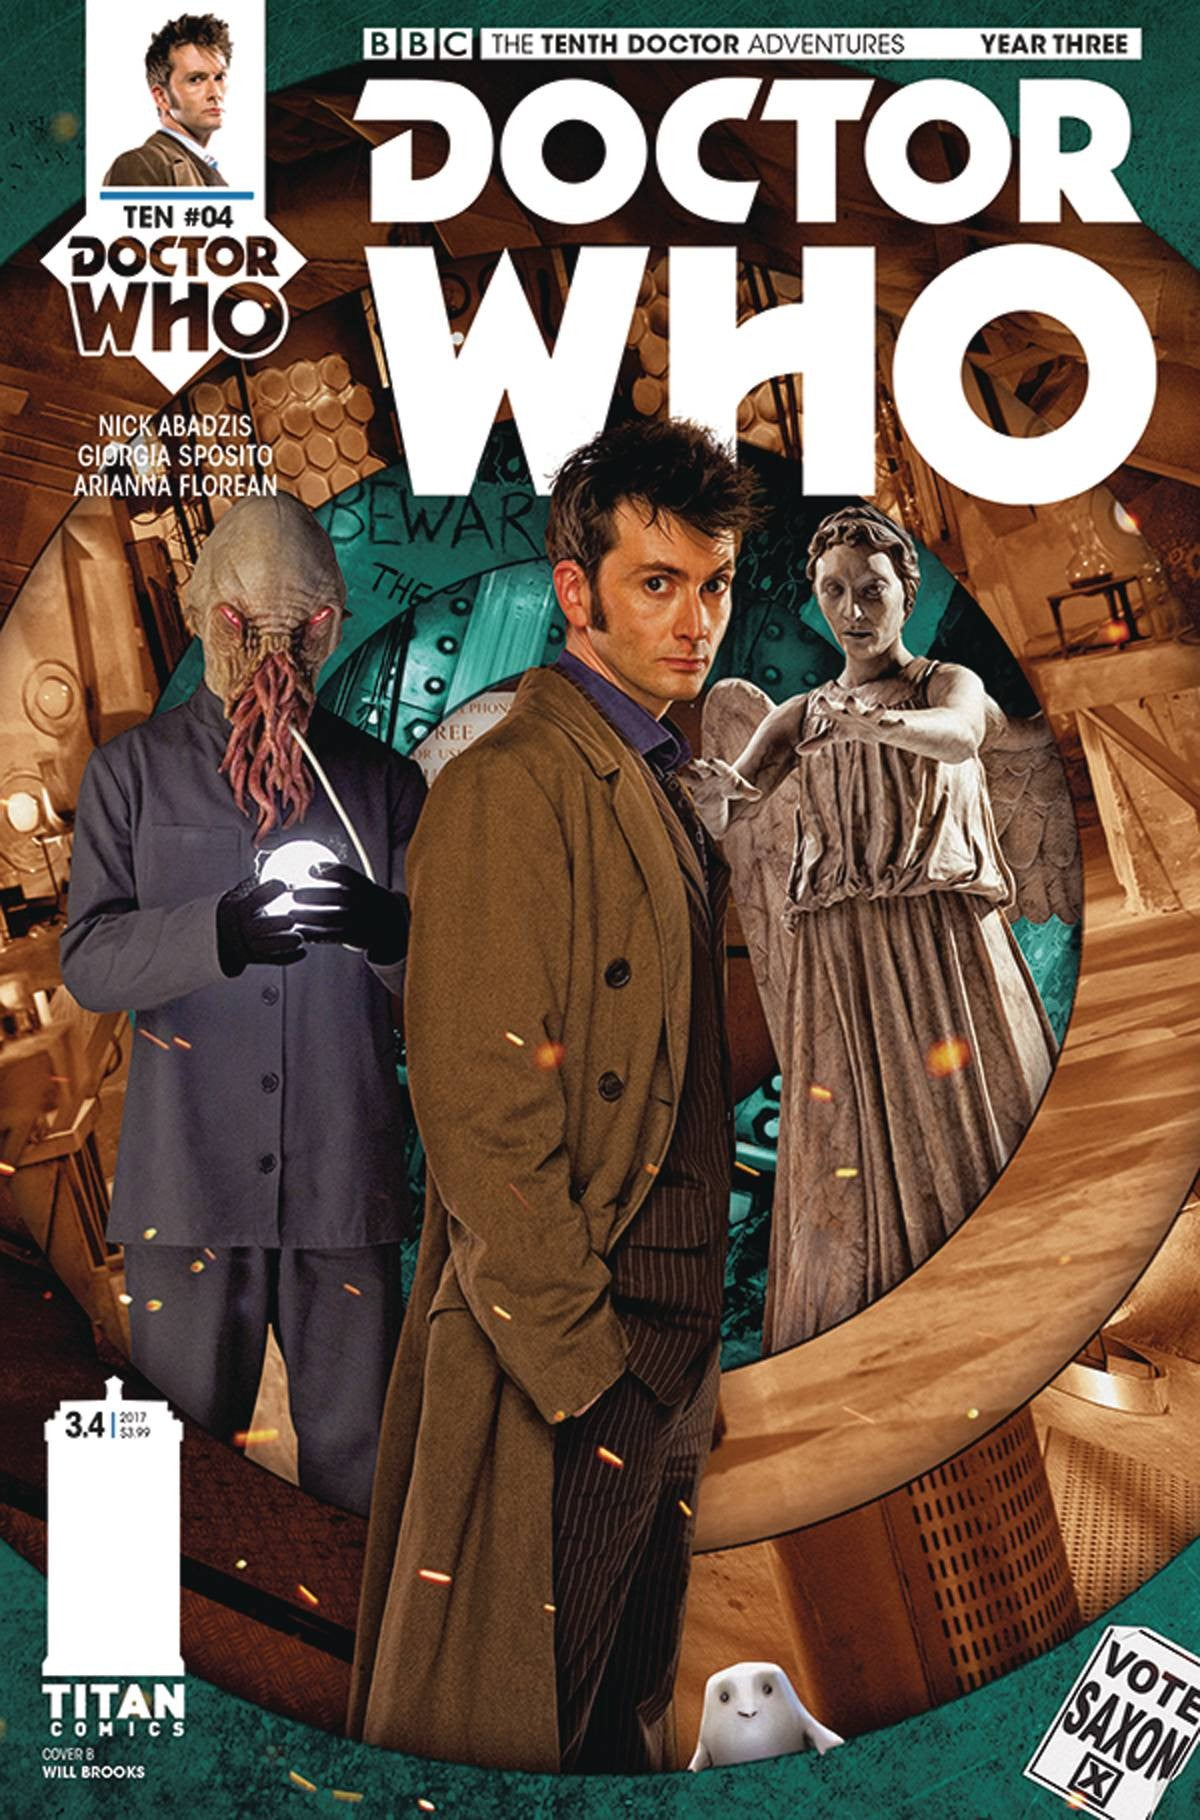 DOCTOR WHO 10TH YEAR THREE #4 CVR B PHOTO